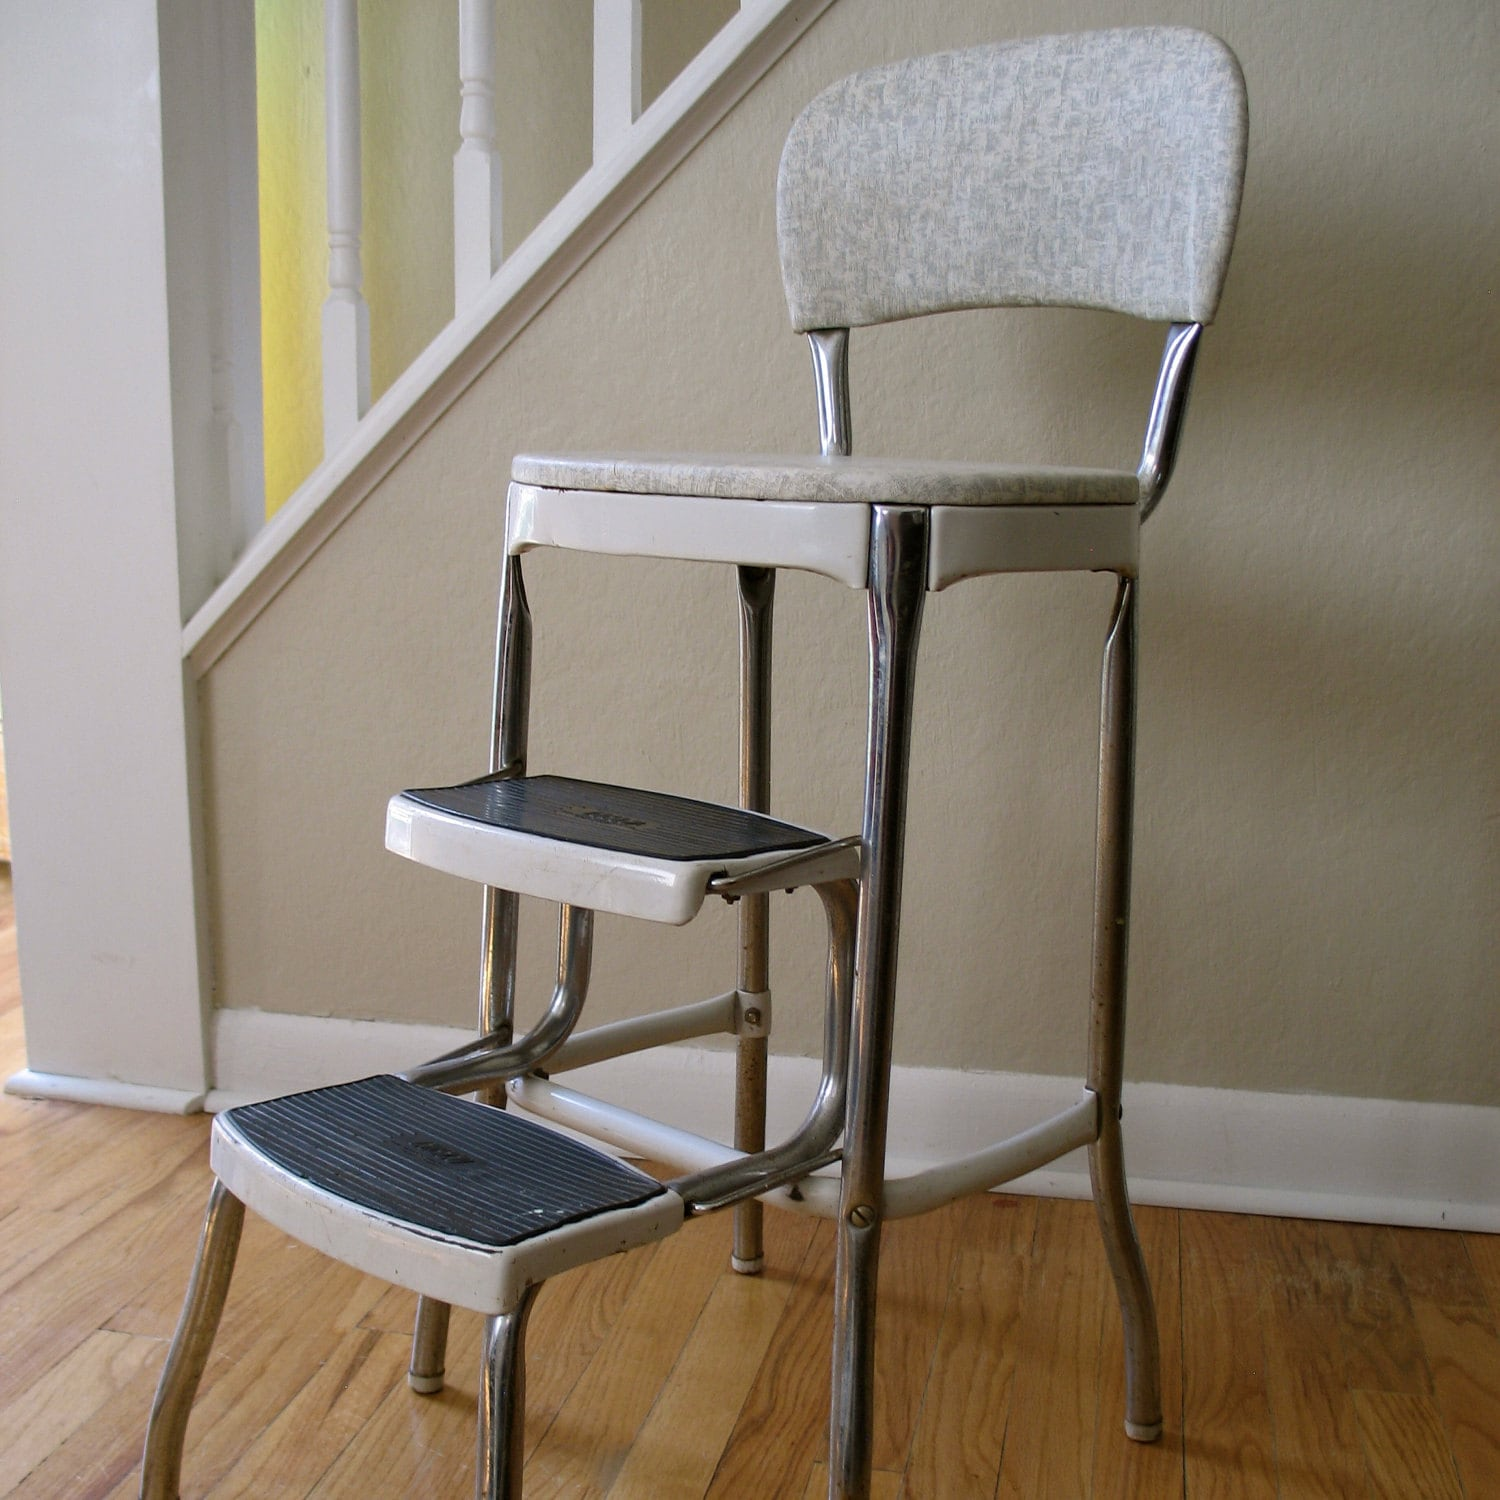 Step Stool Chair Bing Images